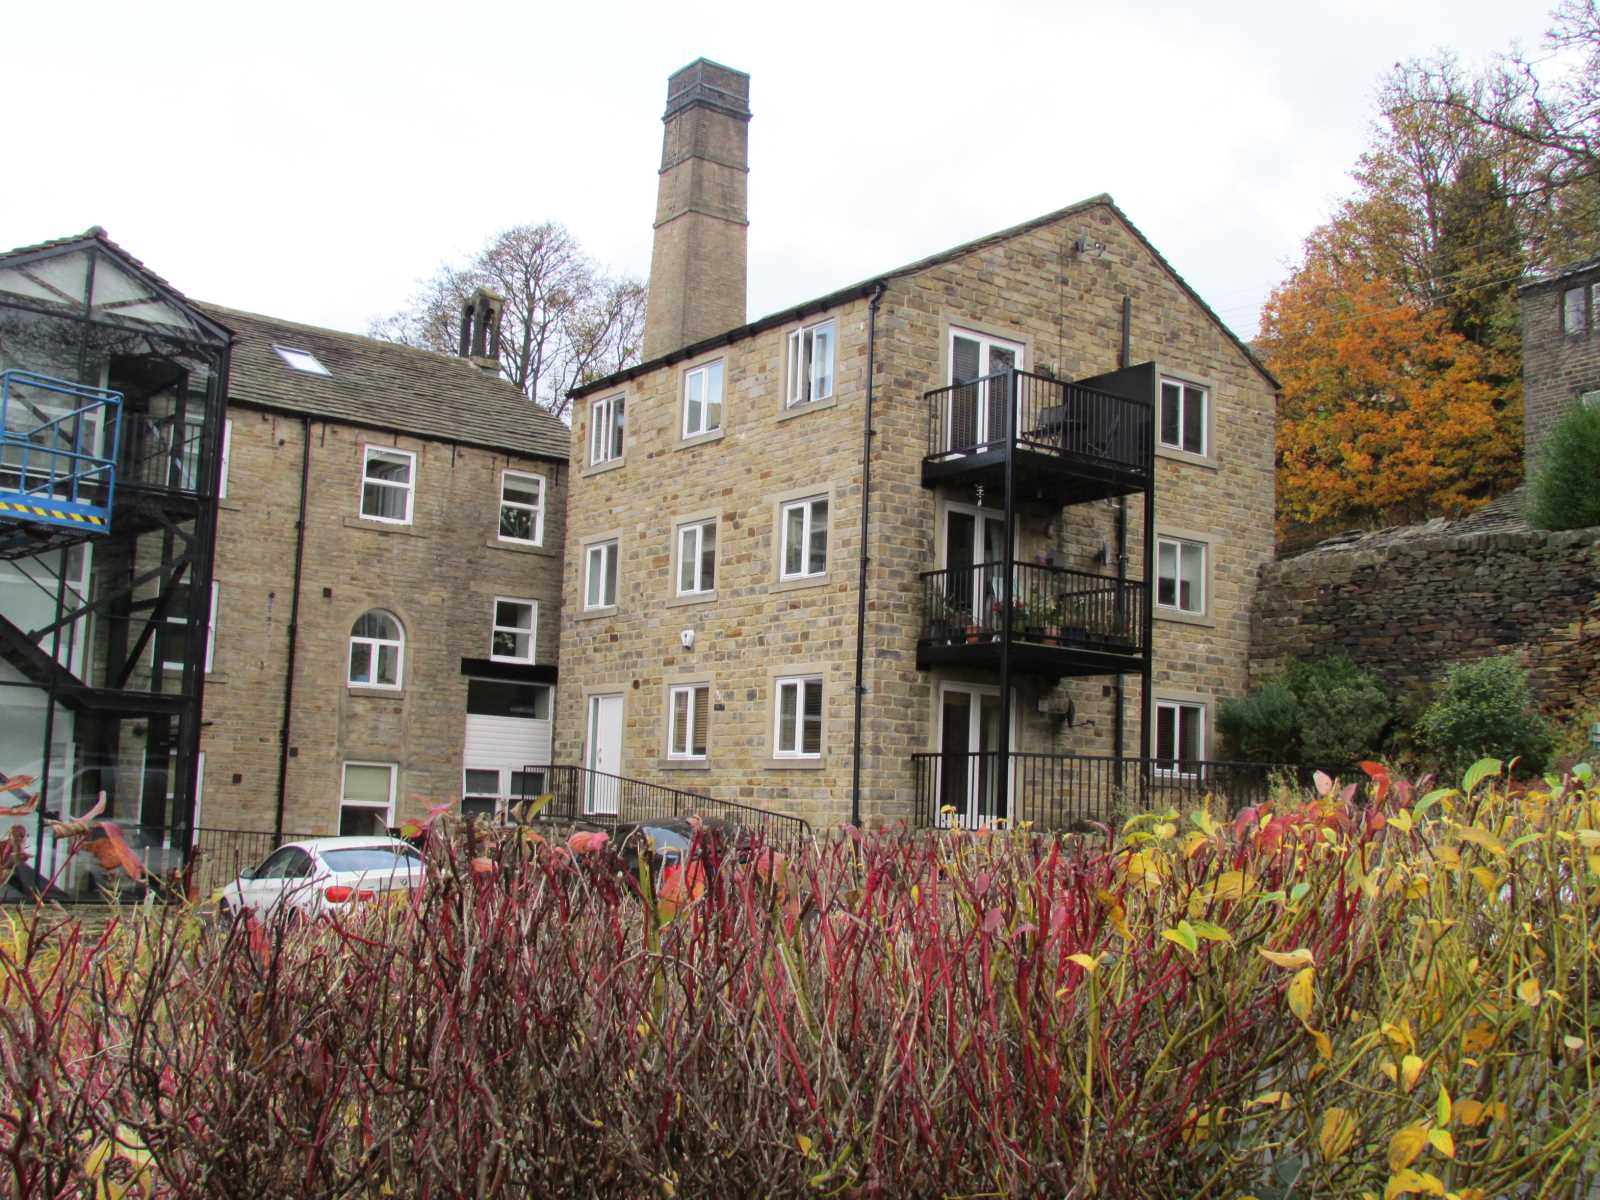 114 Underbank Old Road, Holmfirth, HD9 1AS